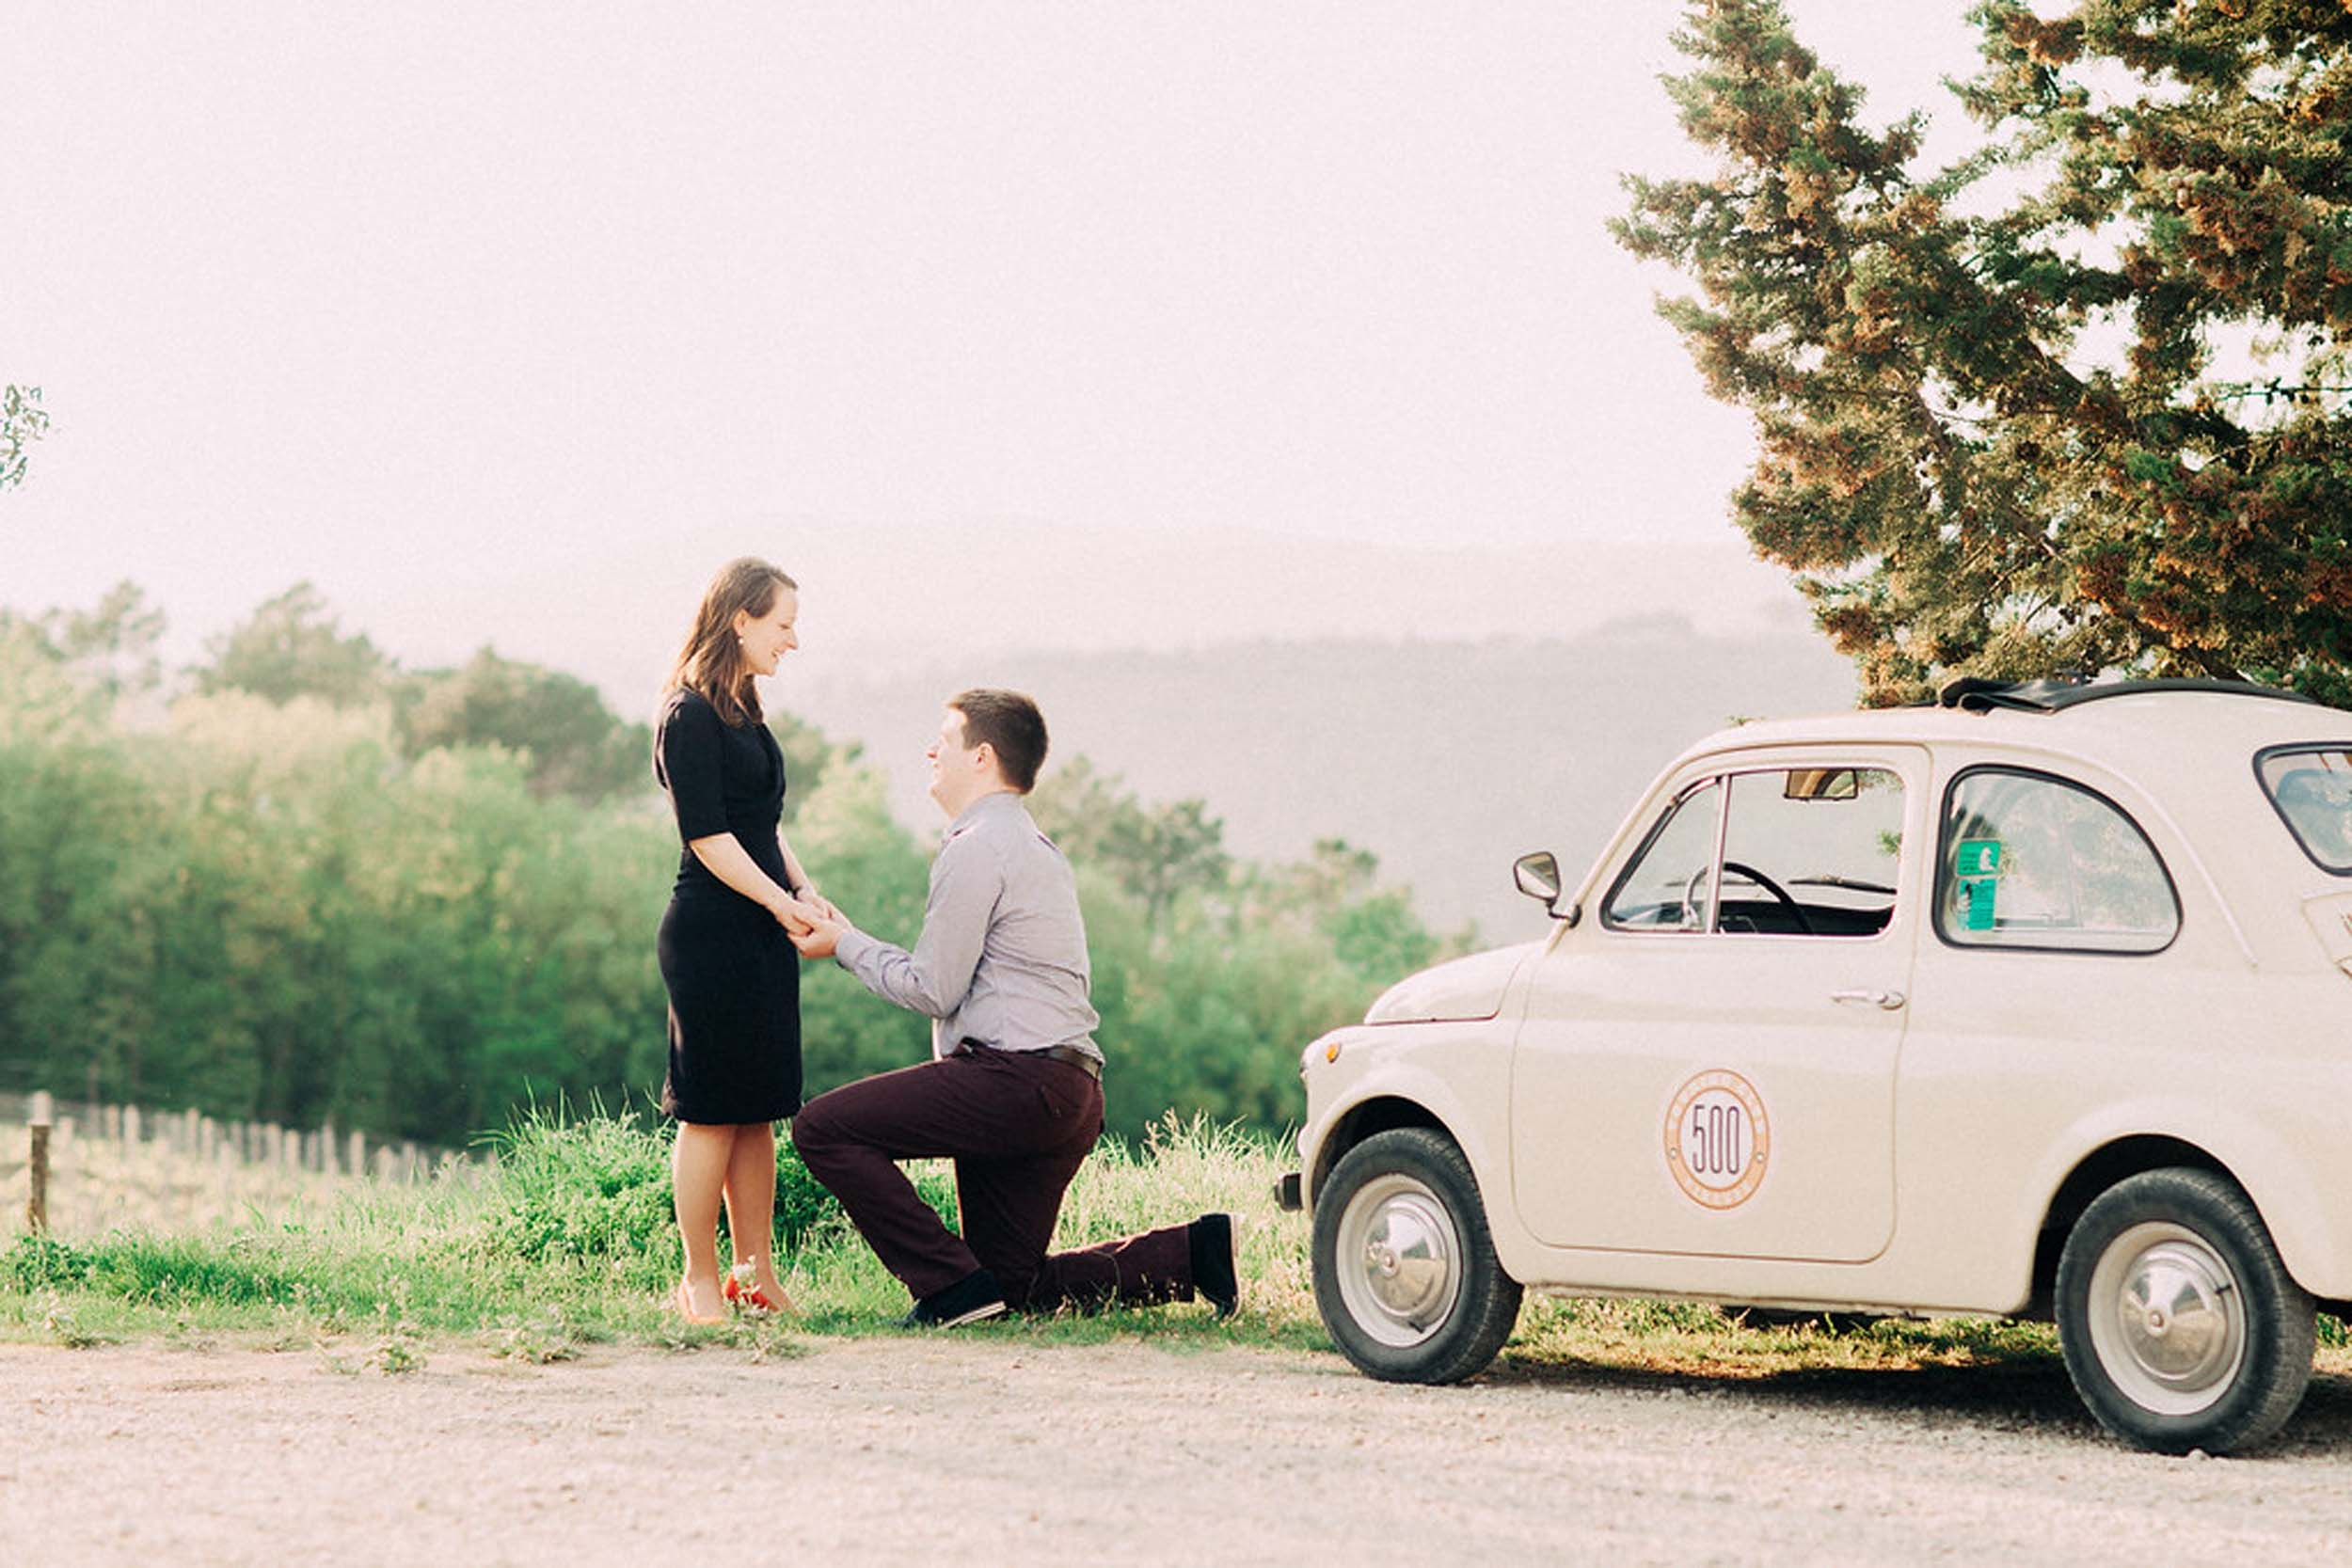 Surprise Flytographer proposal at a winery in Florence, Italy